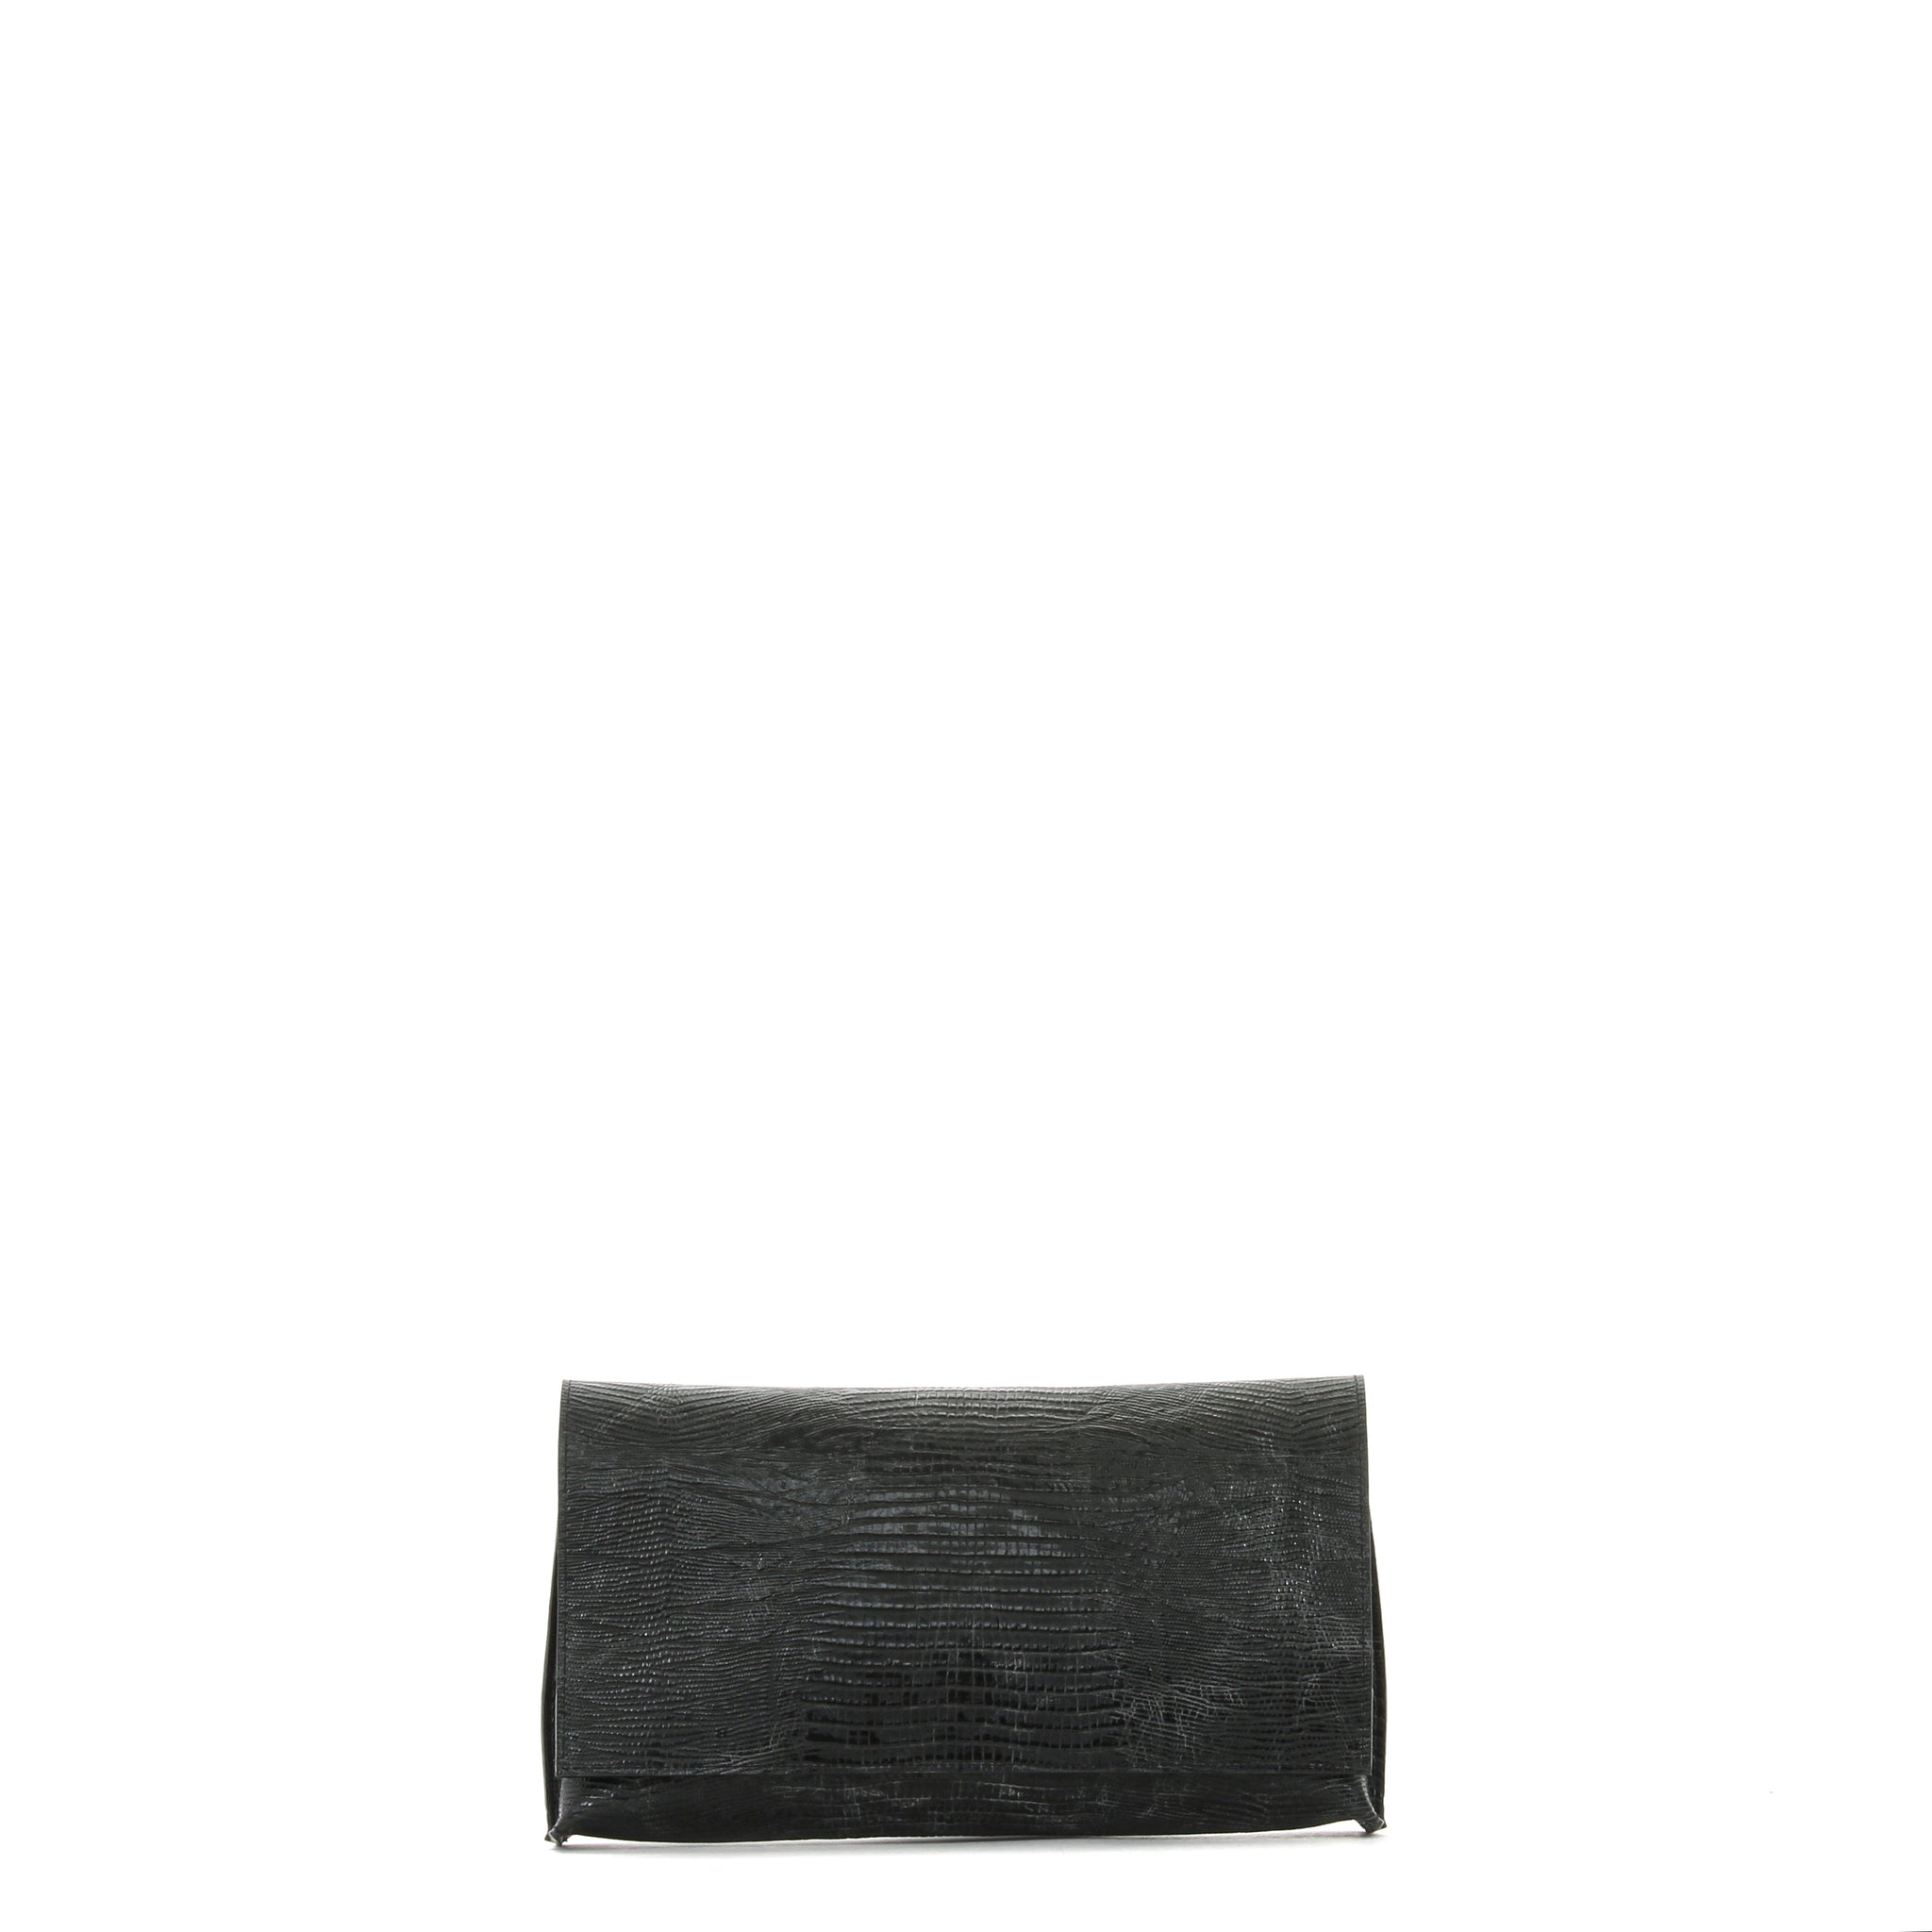 FOLDOVER CLUTCH BLACK EMBOSSED LIZARD